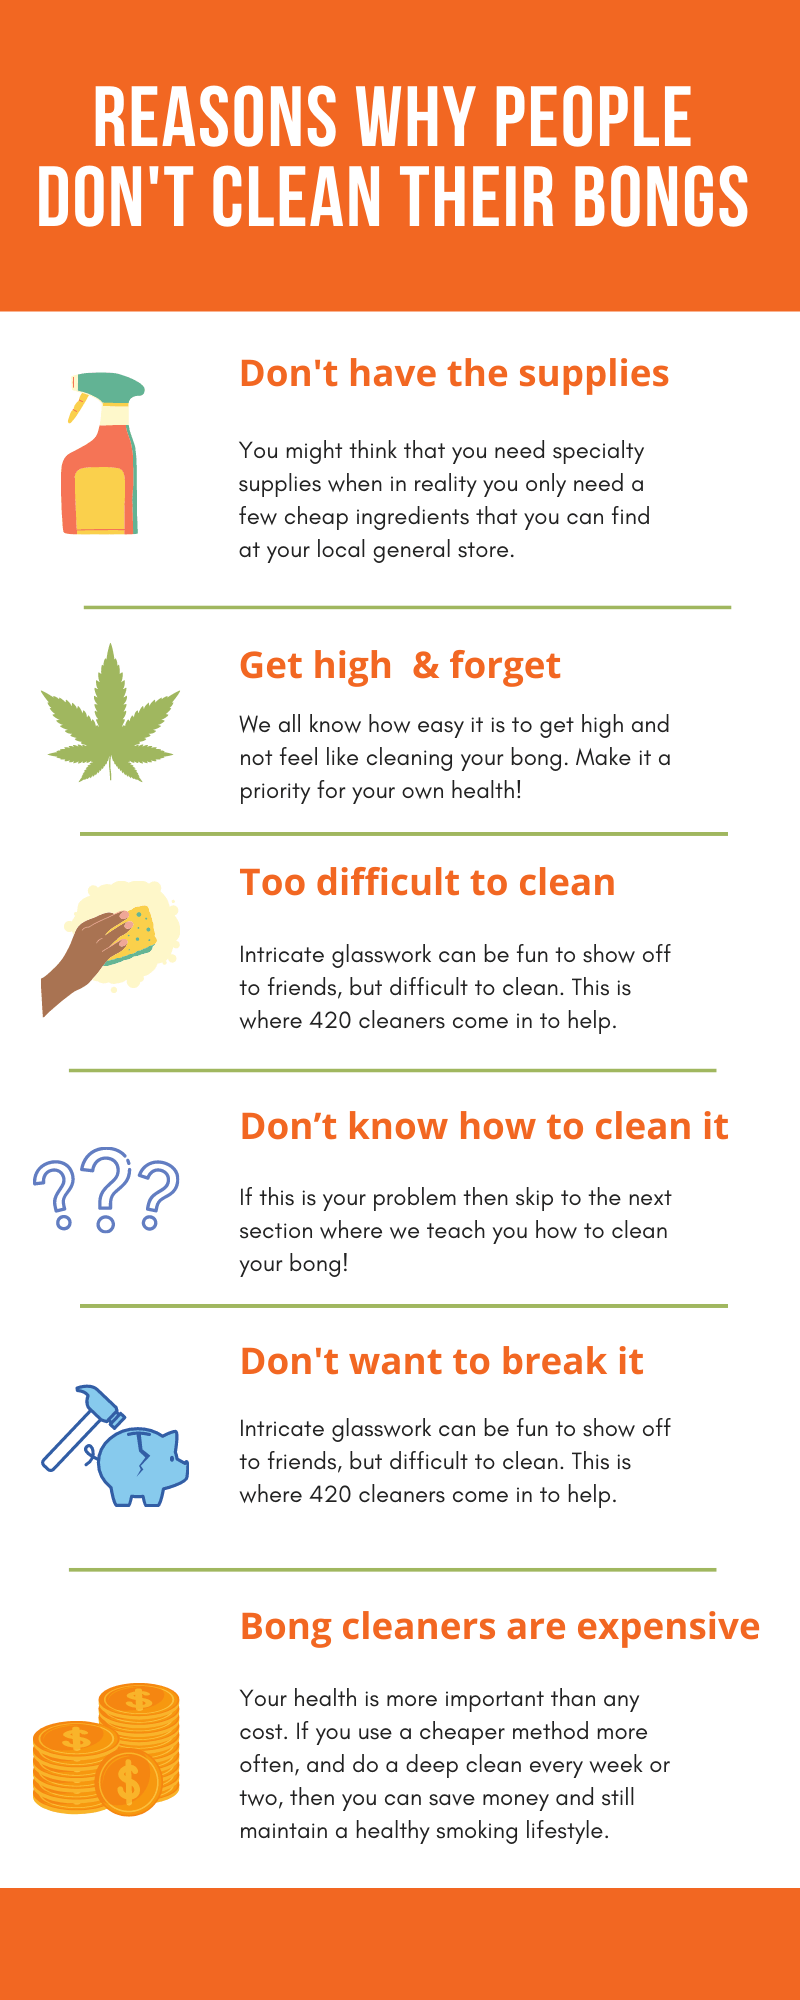 Why people don't clean their bongs